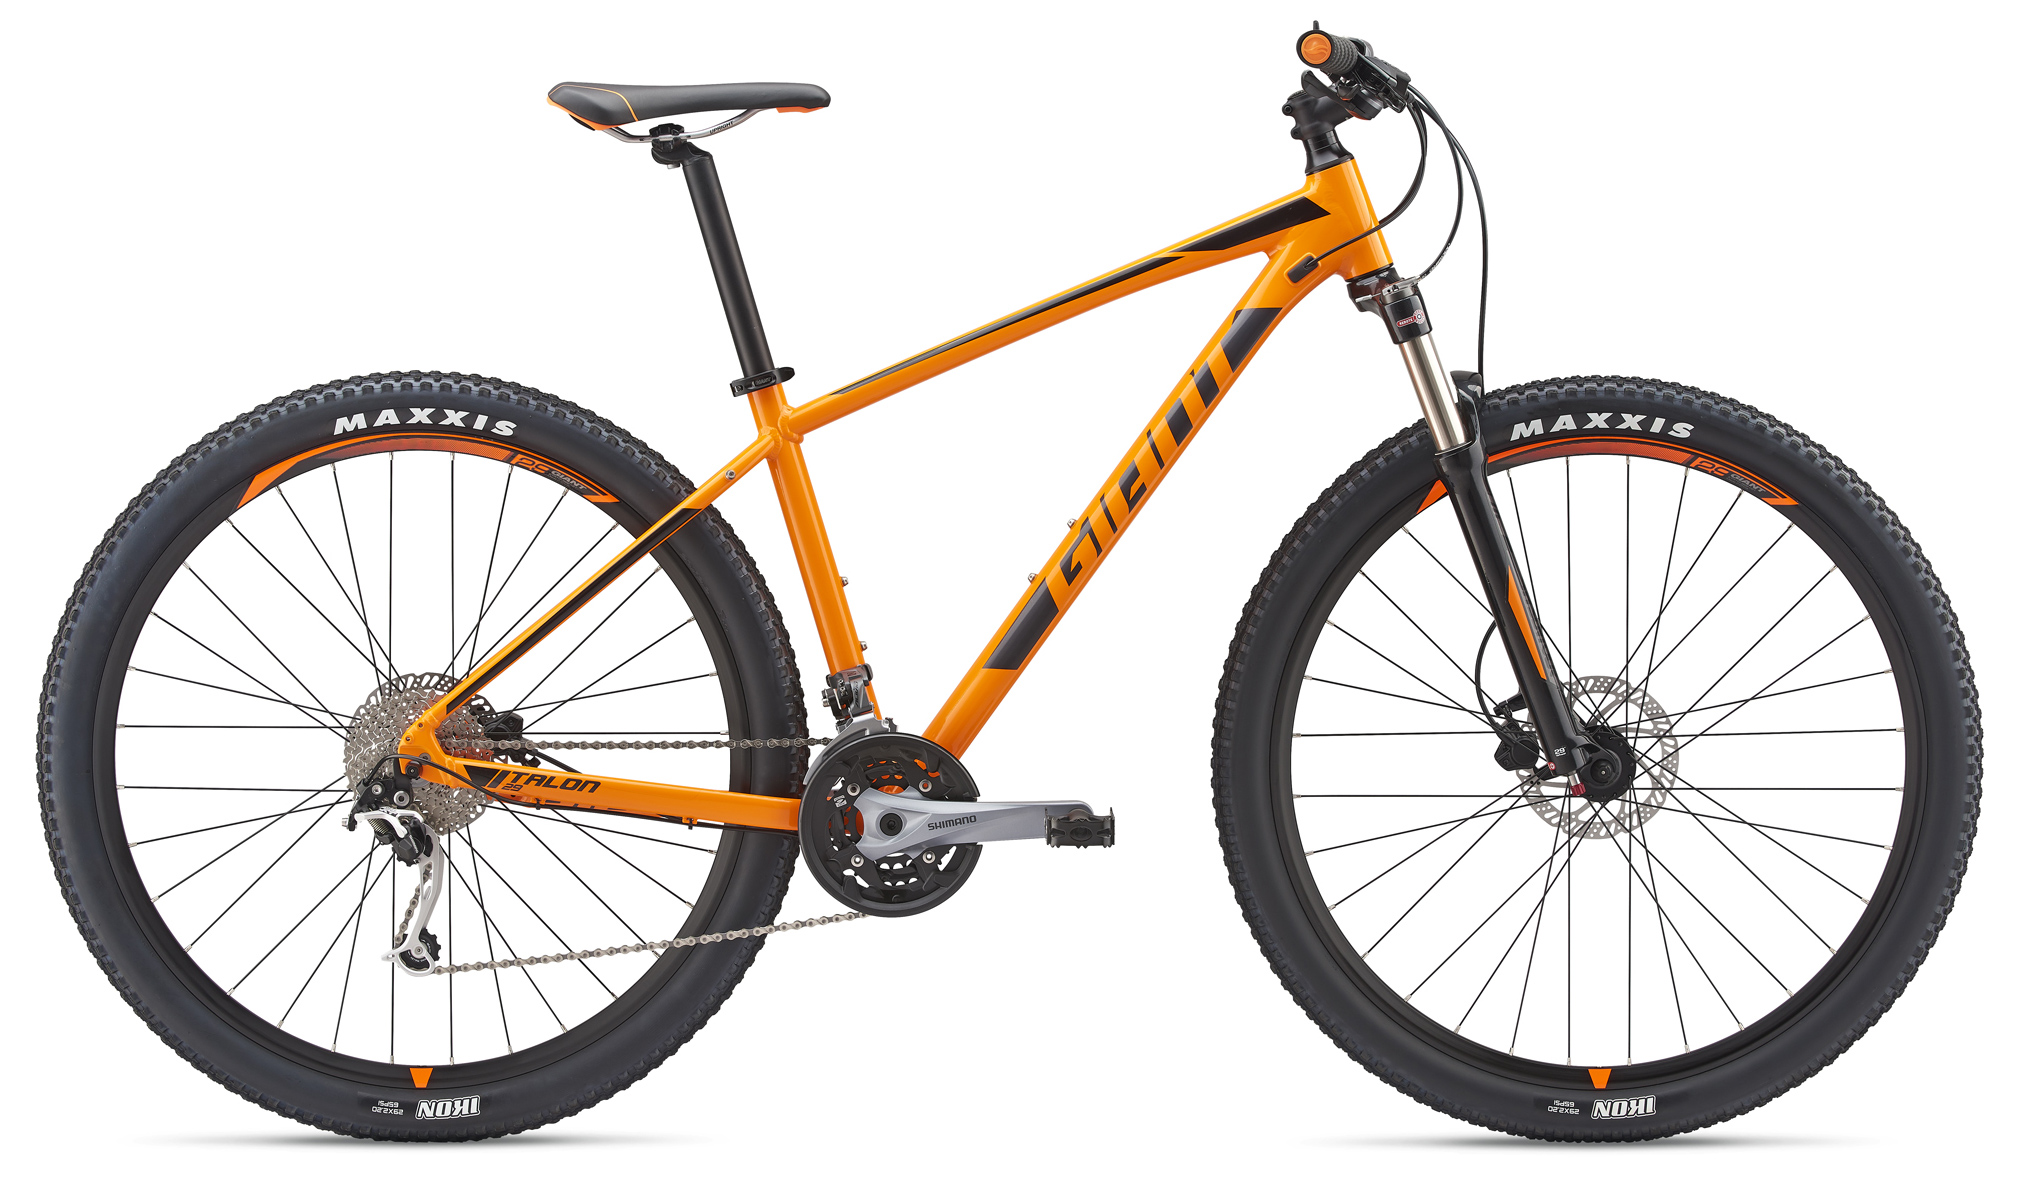 Велосипед Giant Talon 29 2 GE 2019 велосипед giant talon 29er 2 blk 2014